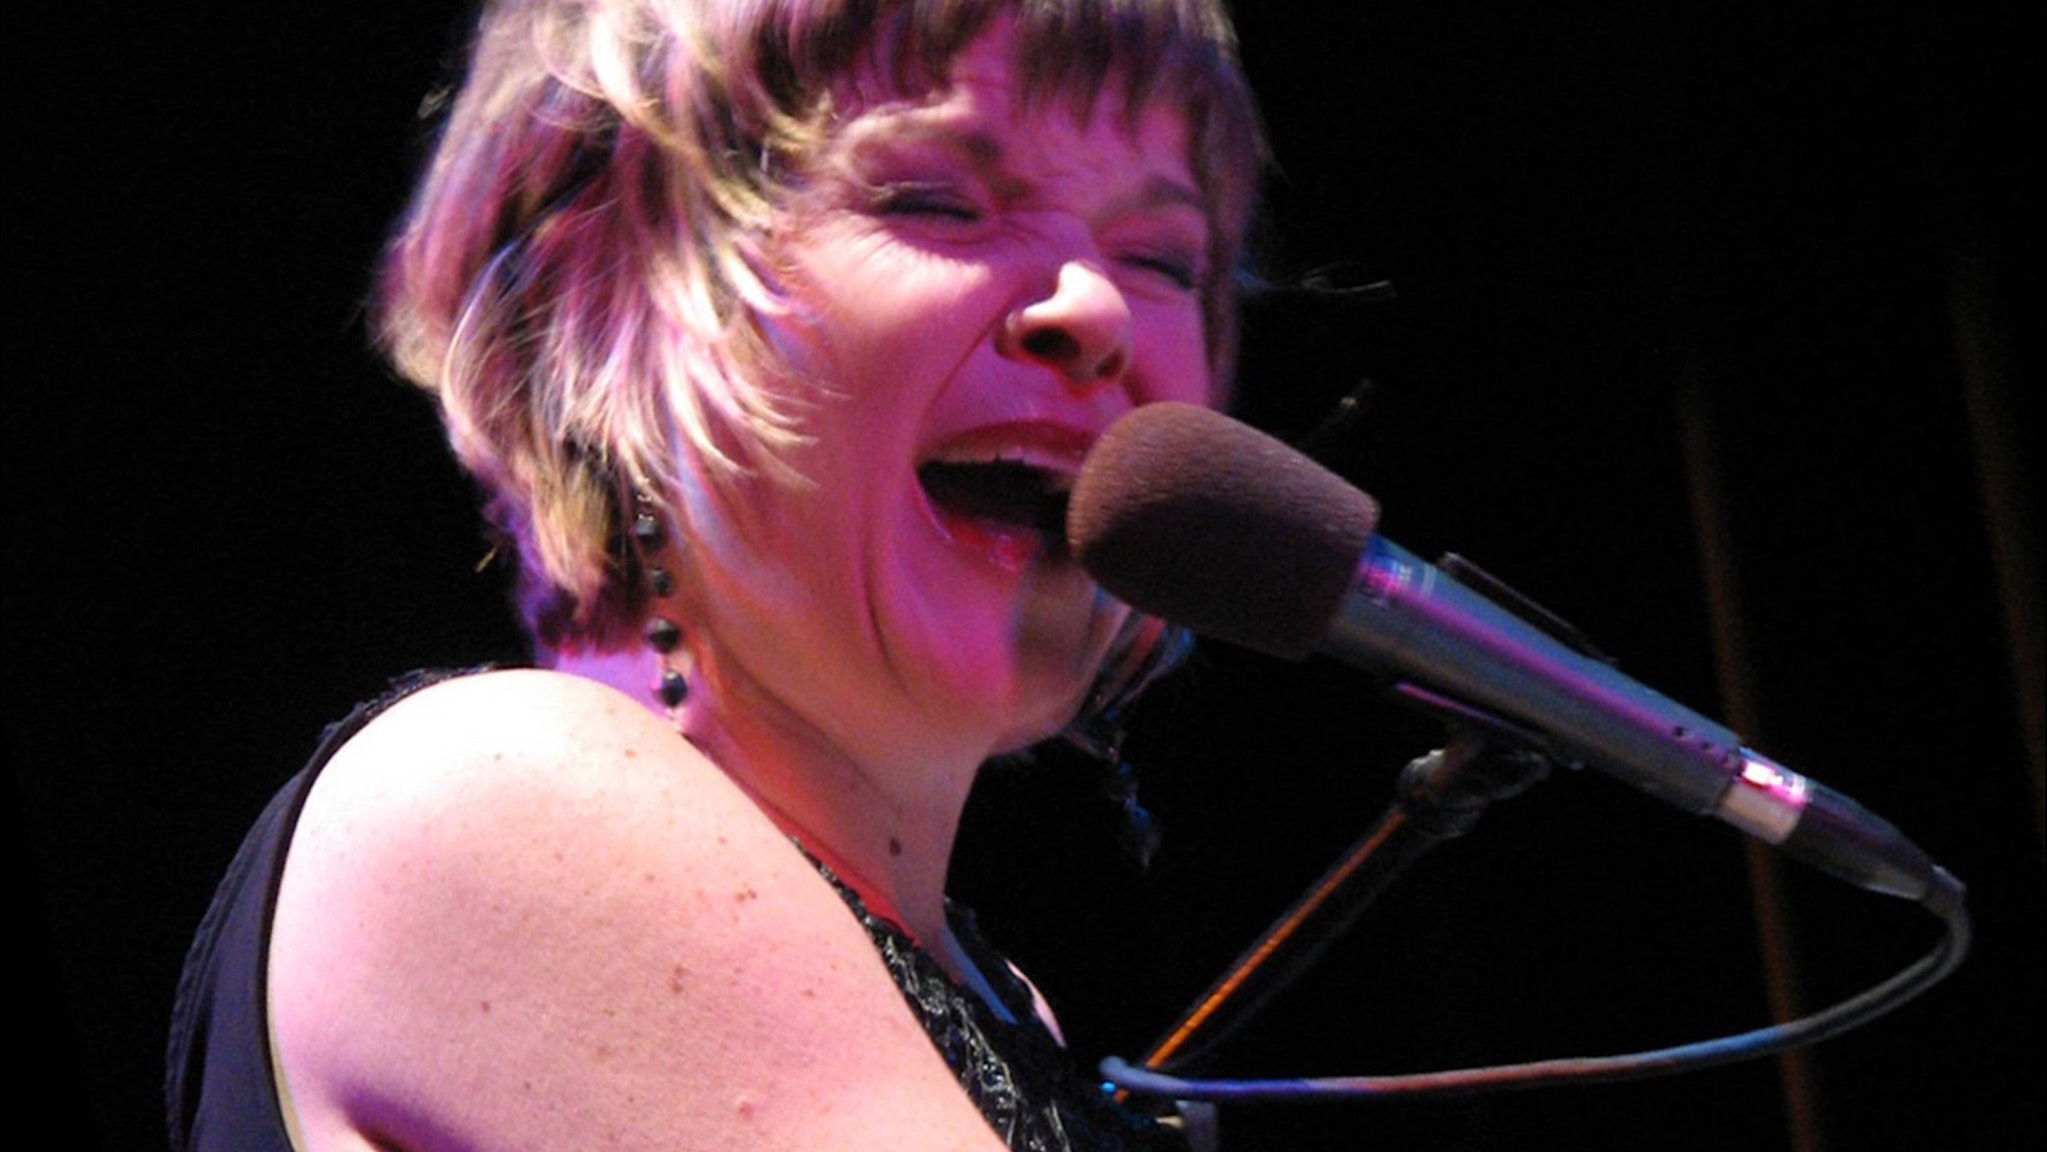 Karrin Allyson will be playing at Bird's Basement from Jan 24th - 28th